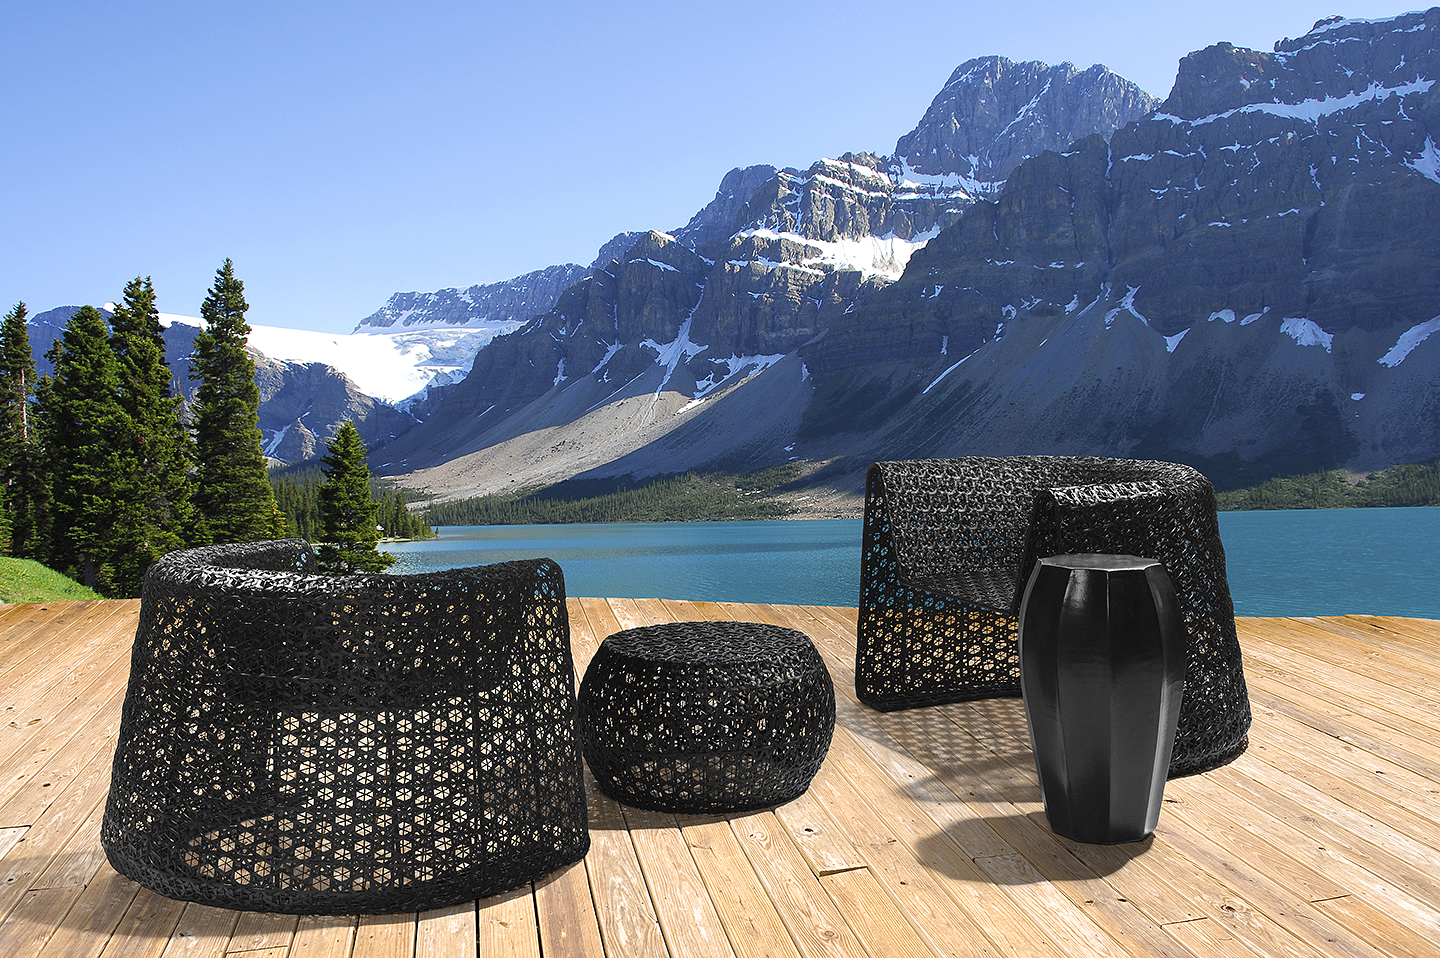 Luxury Indoor Outdoor Furniture: The Black Lace Collection